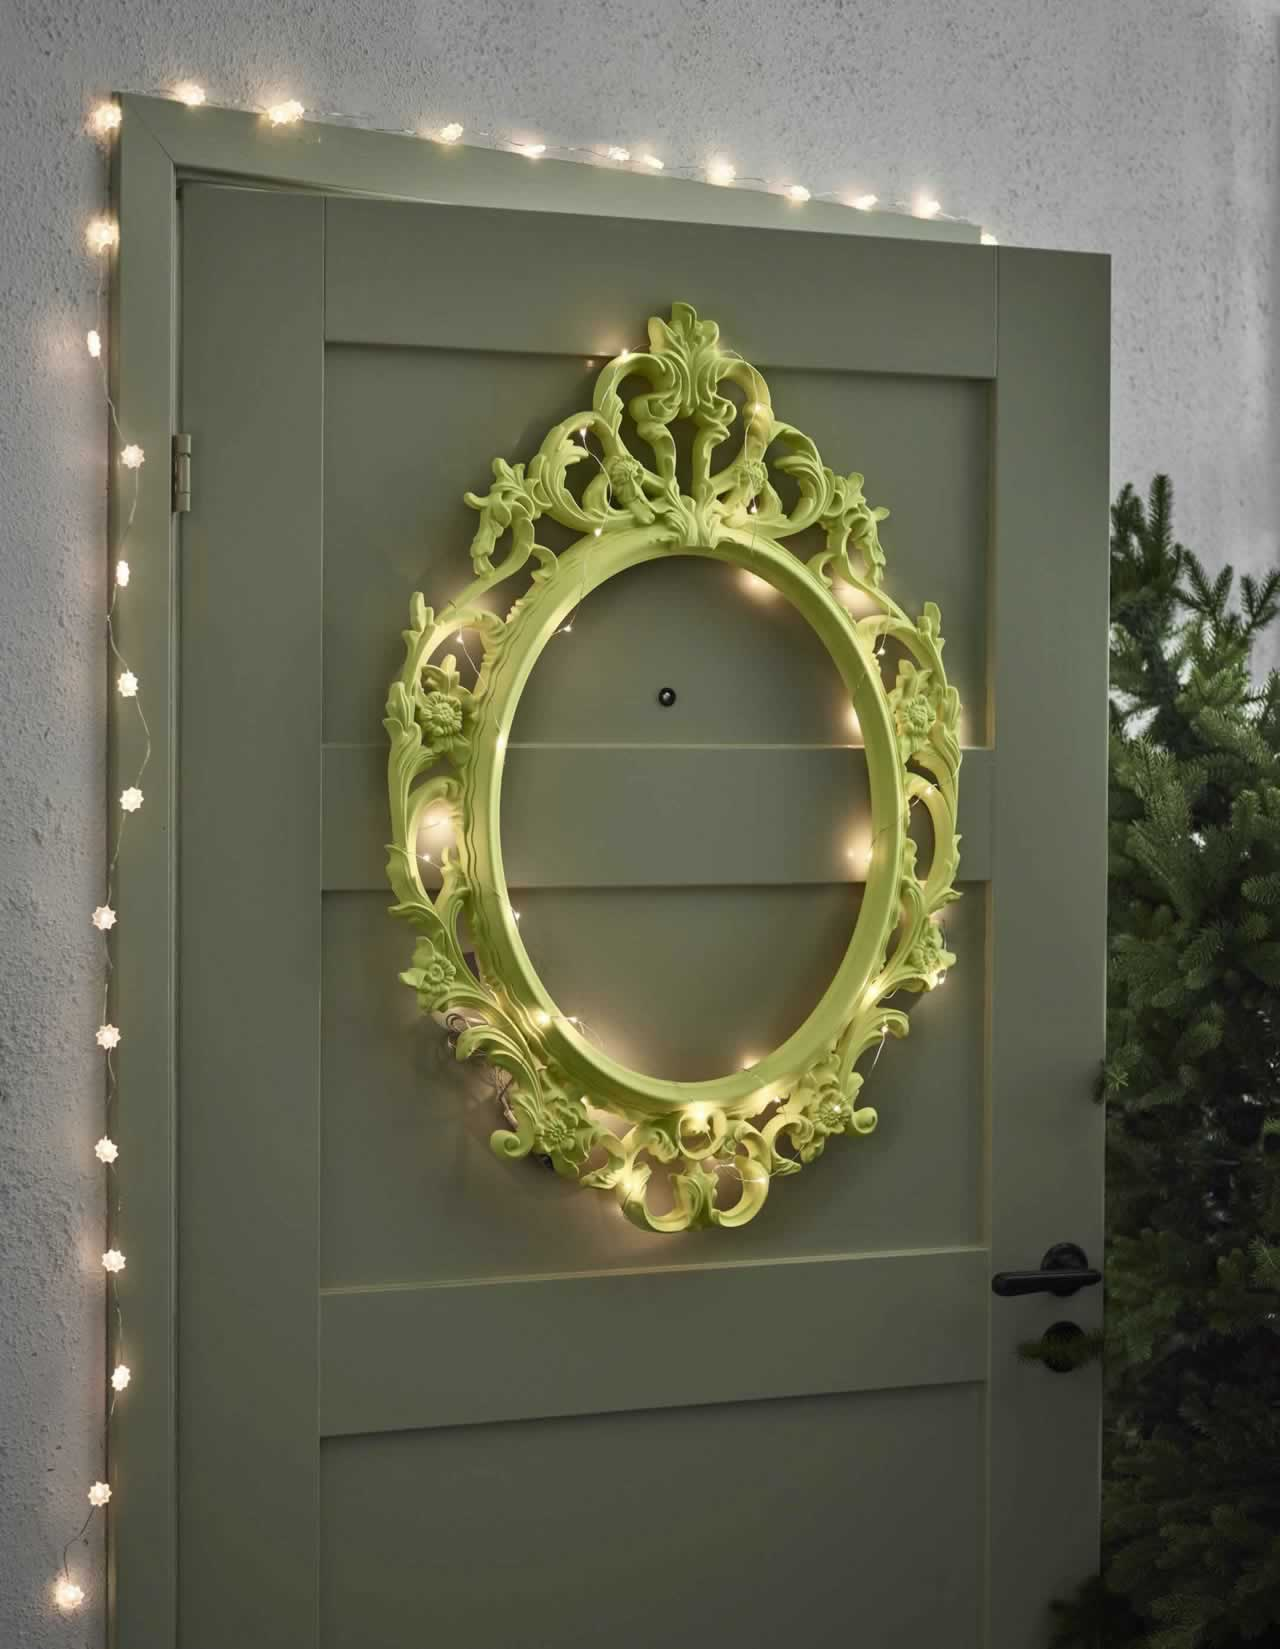 IKEA Ideas - 5 easy deco tips for the holiday